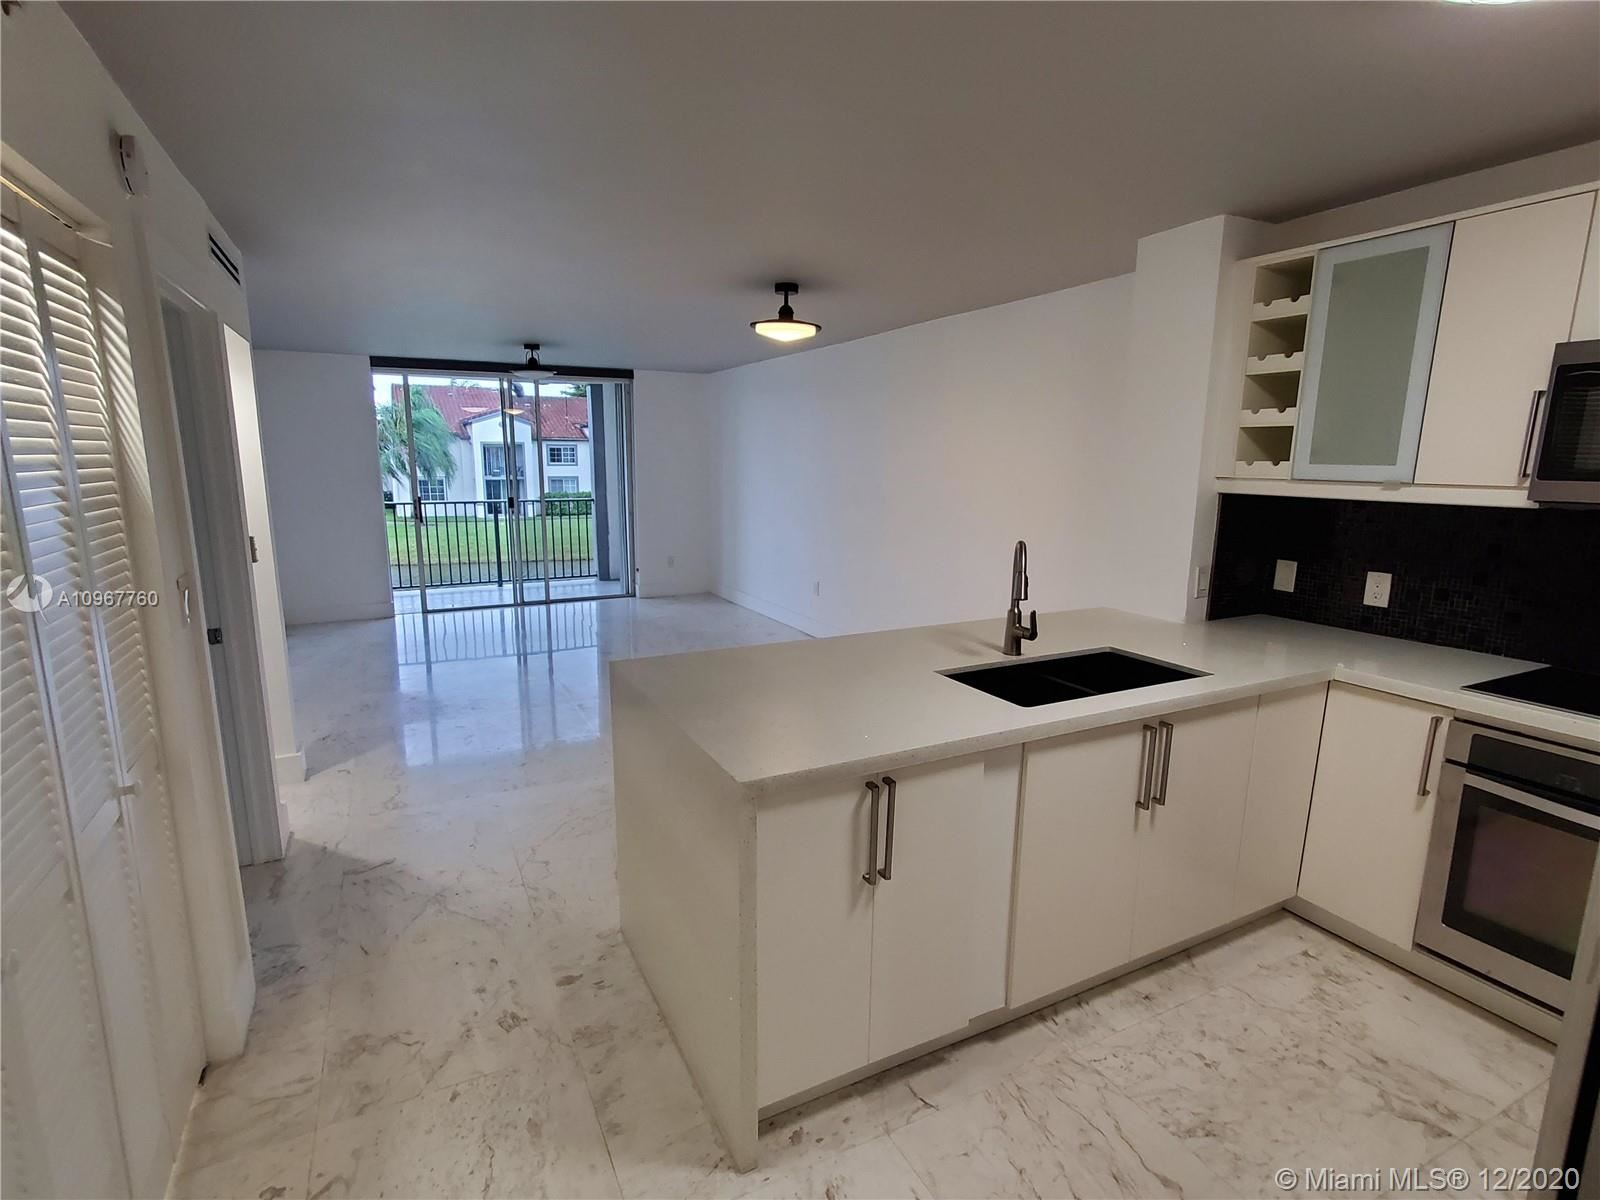 4360 NW 107th Ave #202, Doral, FL 33178 - #: A10967760